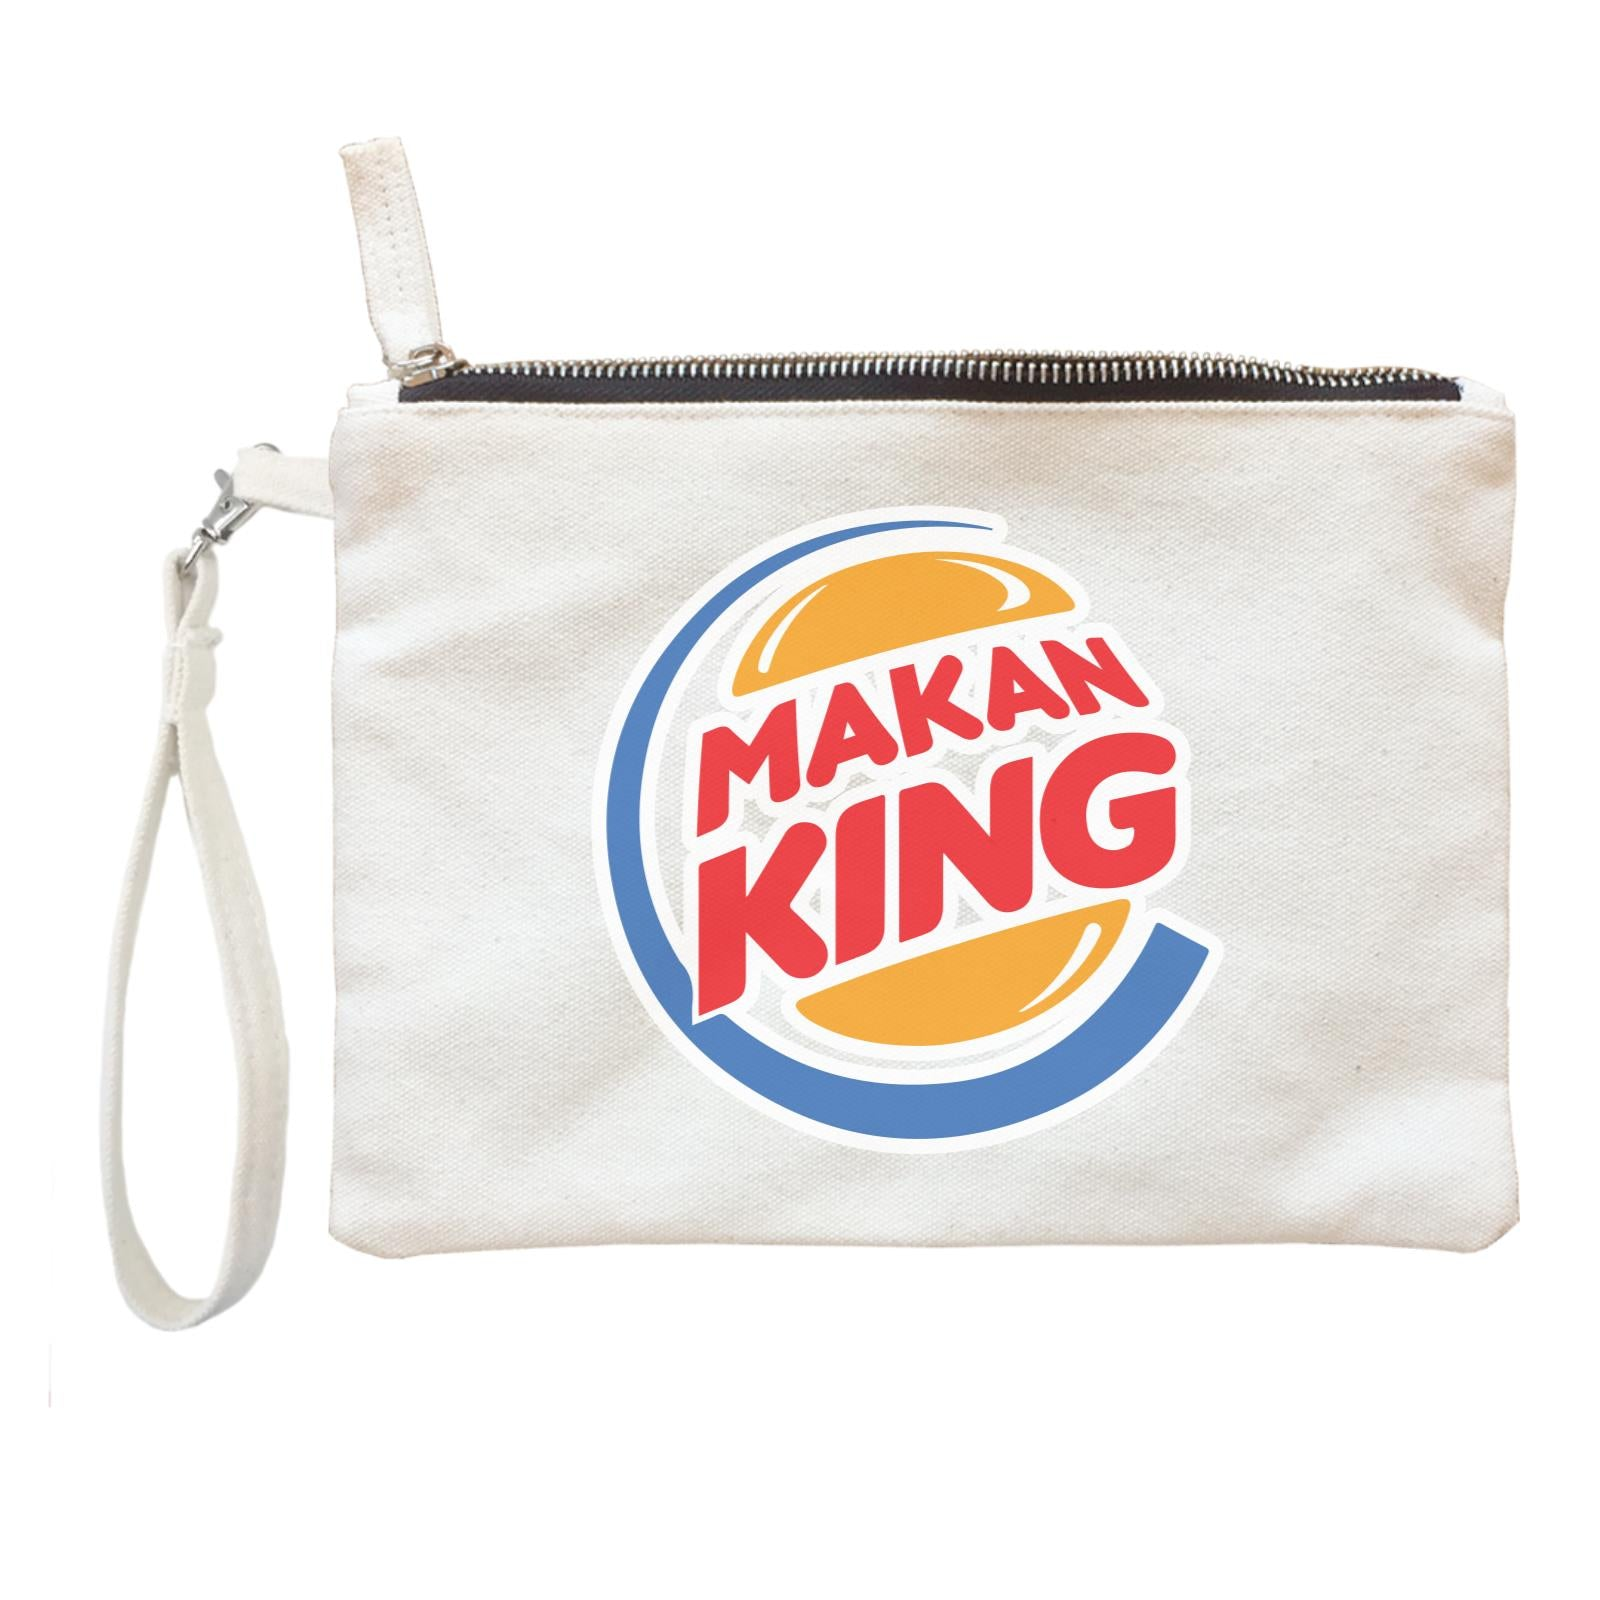 Slang Statement Makan King Accessories Zipper Pouch with Handle